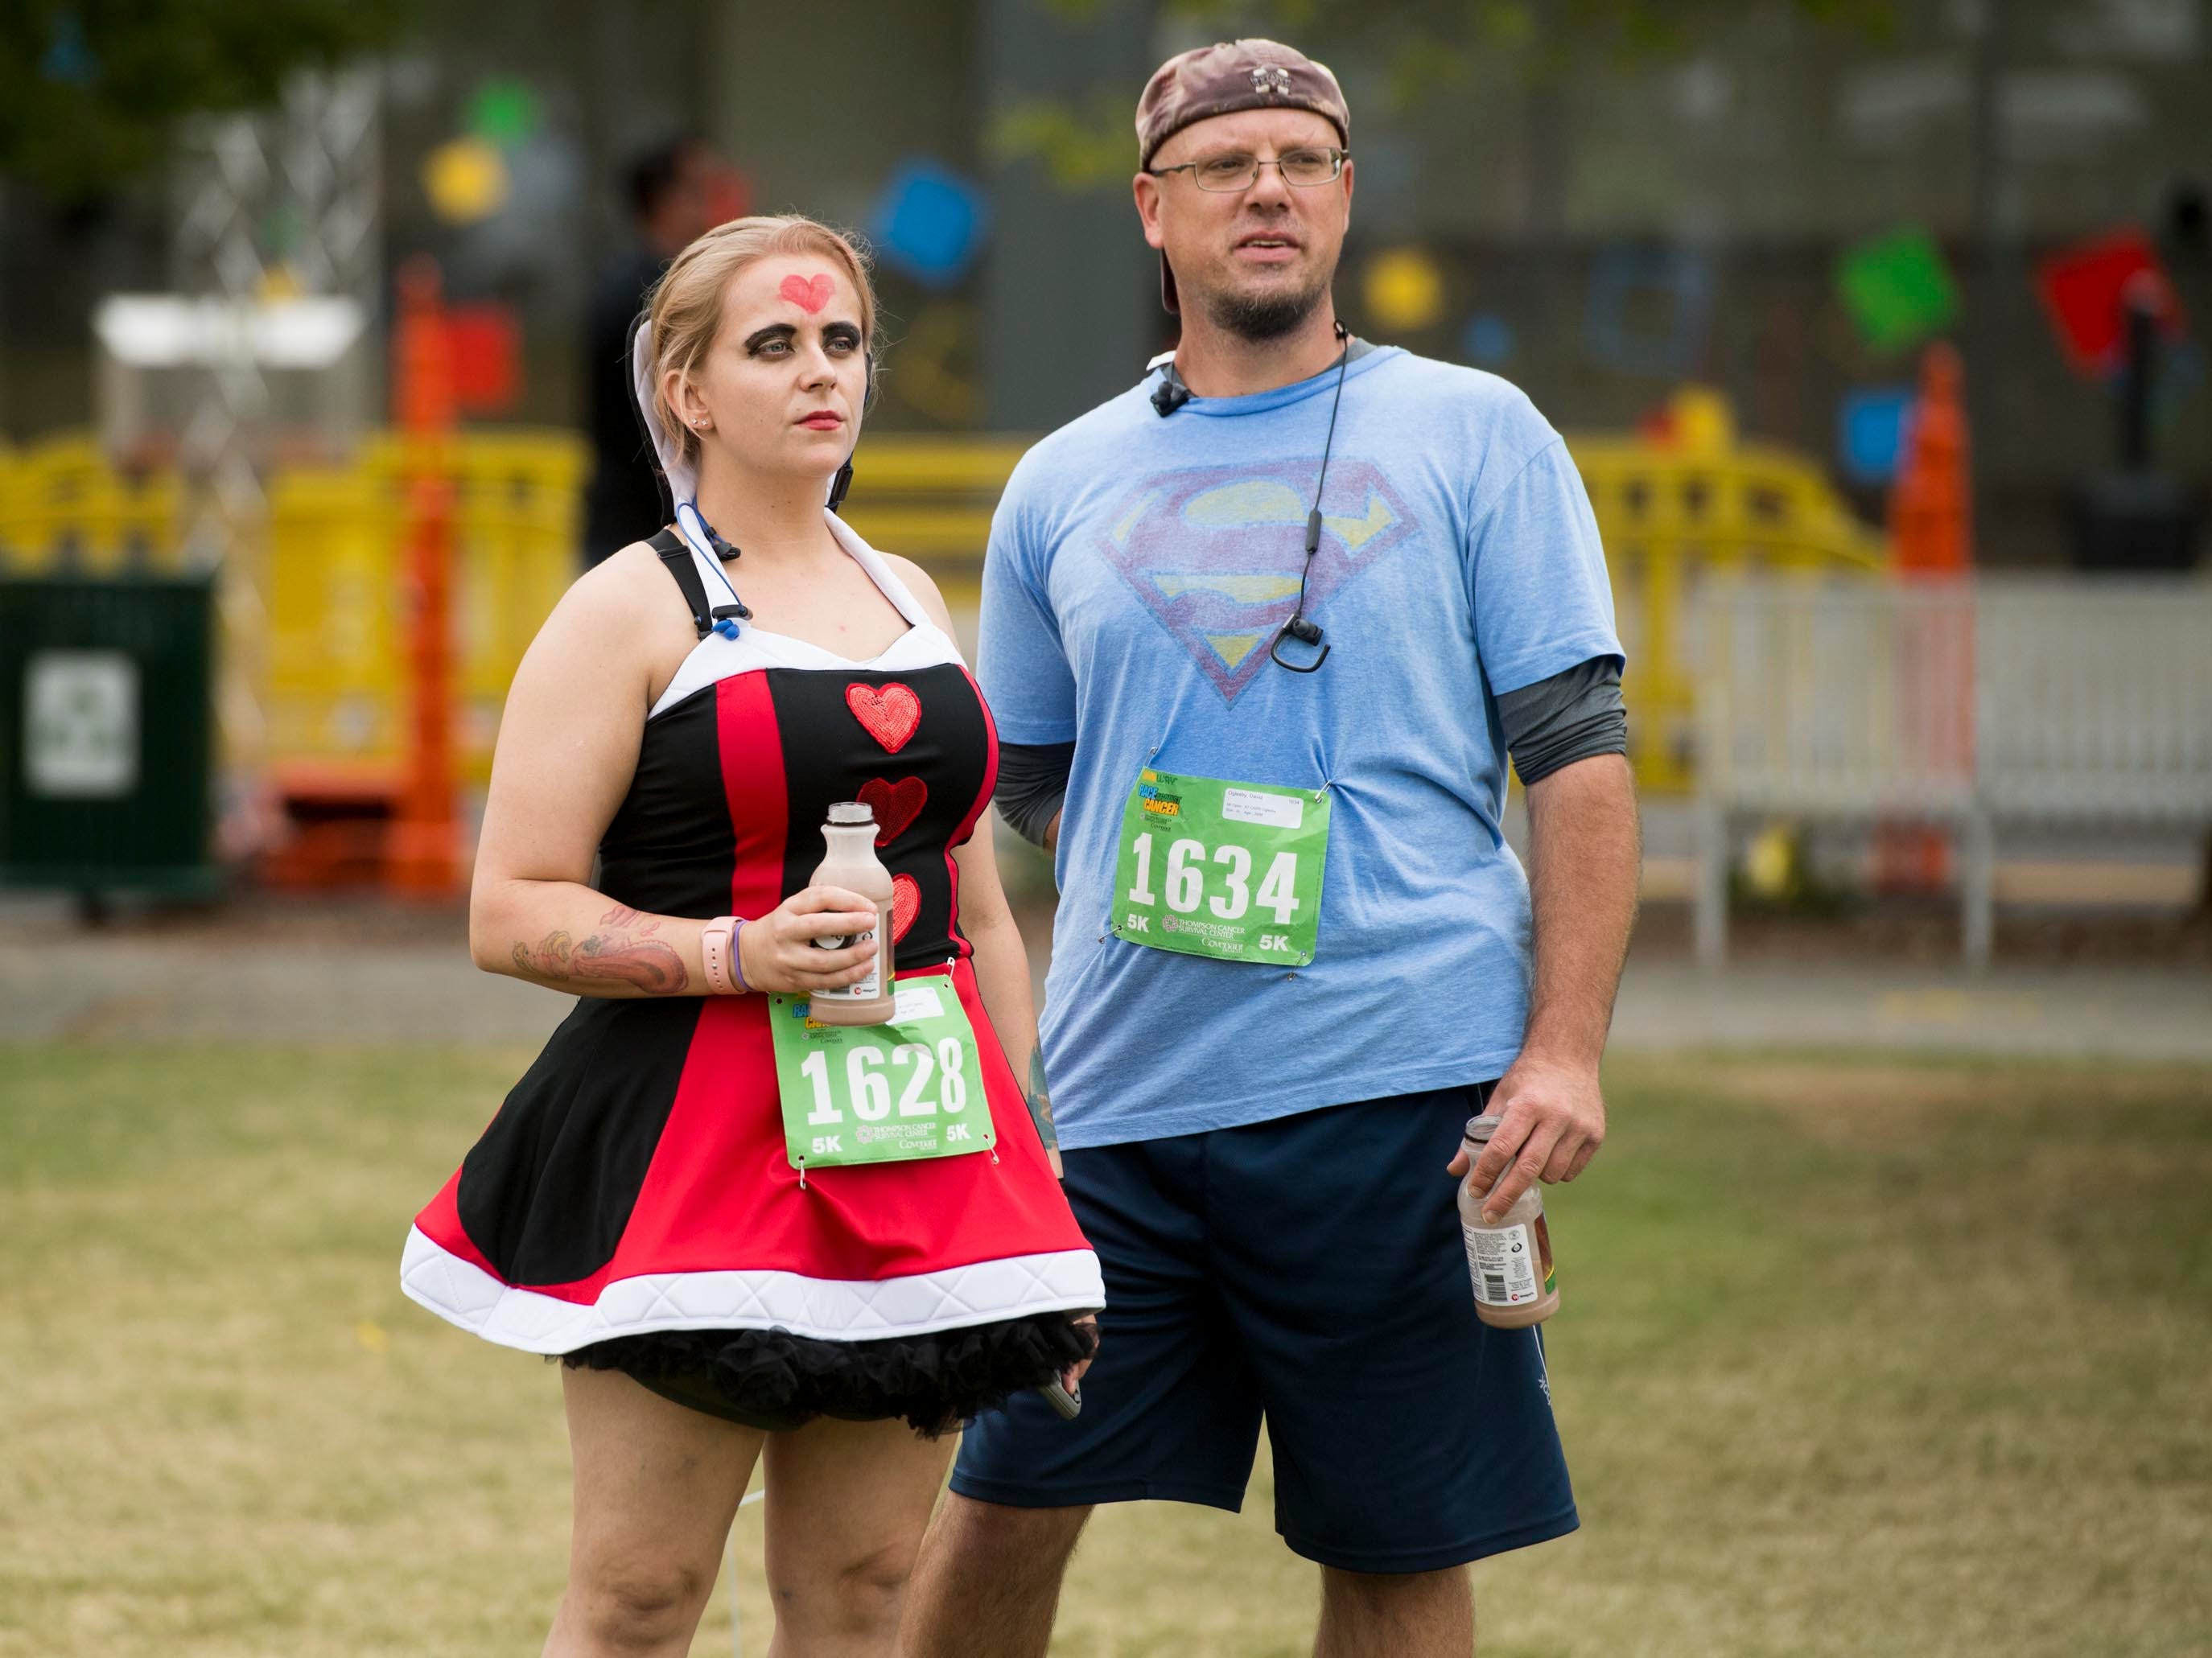 Elisabeth Carr and David Oglesby wait for the start of Covenant Health's Subway Race Against Cancer at World's Fair Park on Sunday, October 14, 2018. Carr is running as the Queen of Hearts for her papaw Myrl Carr.